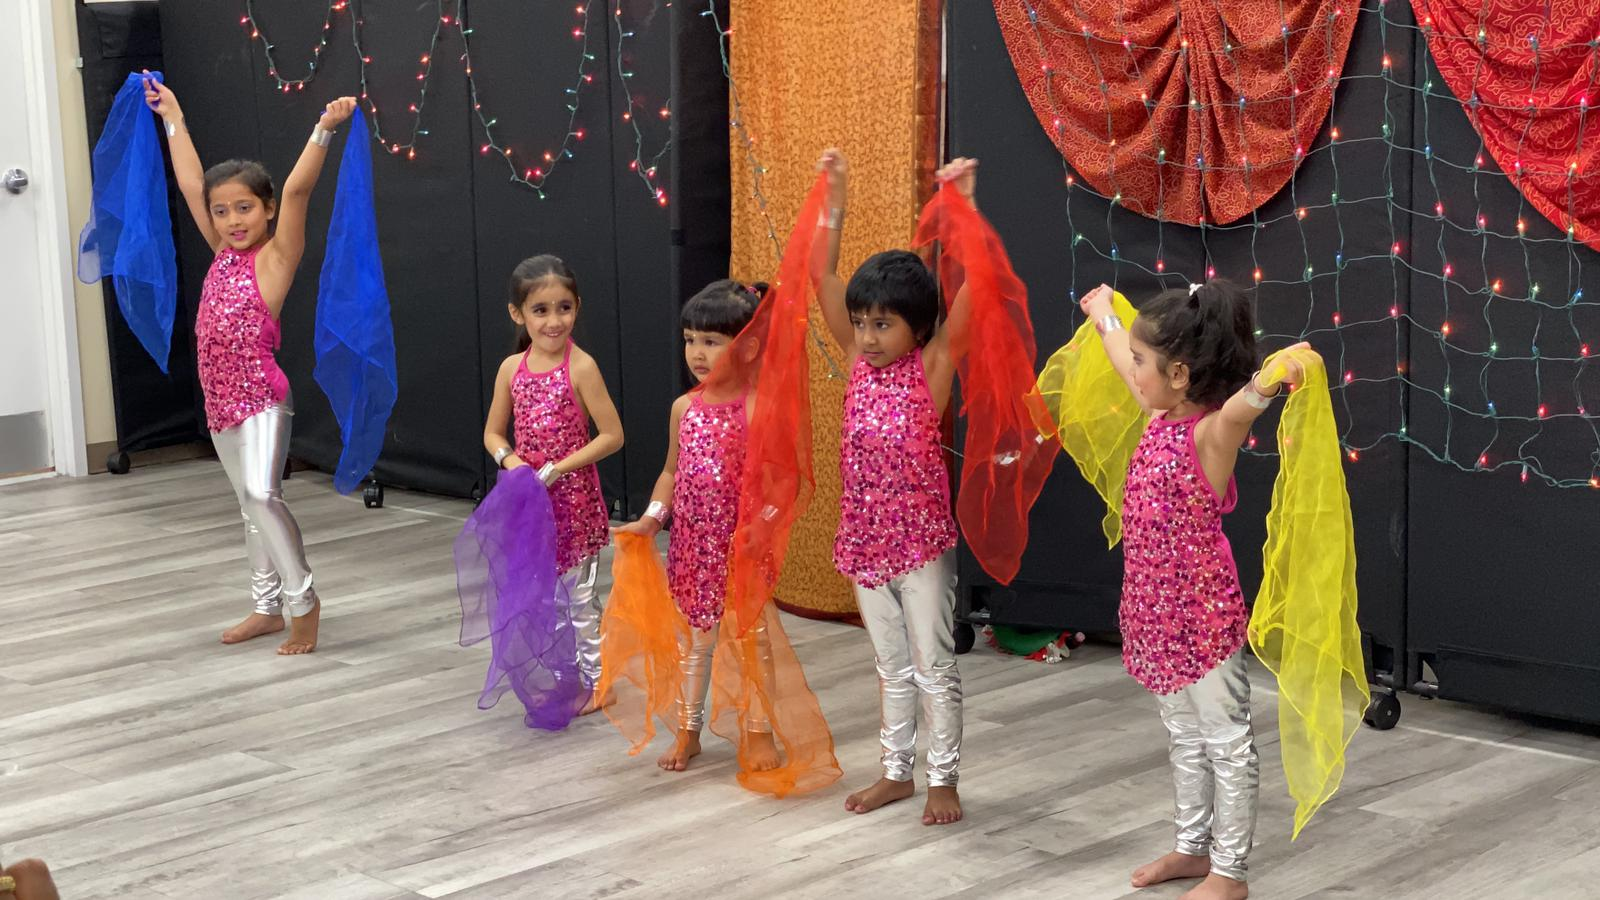 https://jhalakdanceacademy.com/wp-content/uploads/2020/05/PHOTO-2019-11-02-16-36-18.jpg